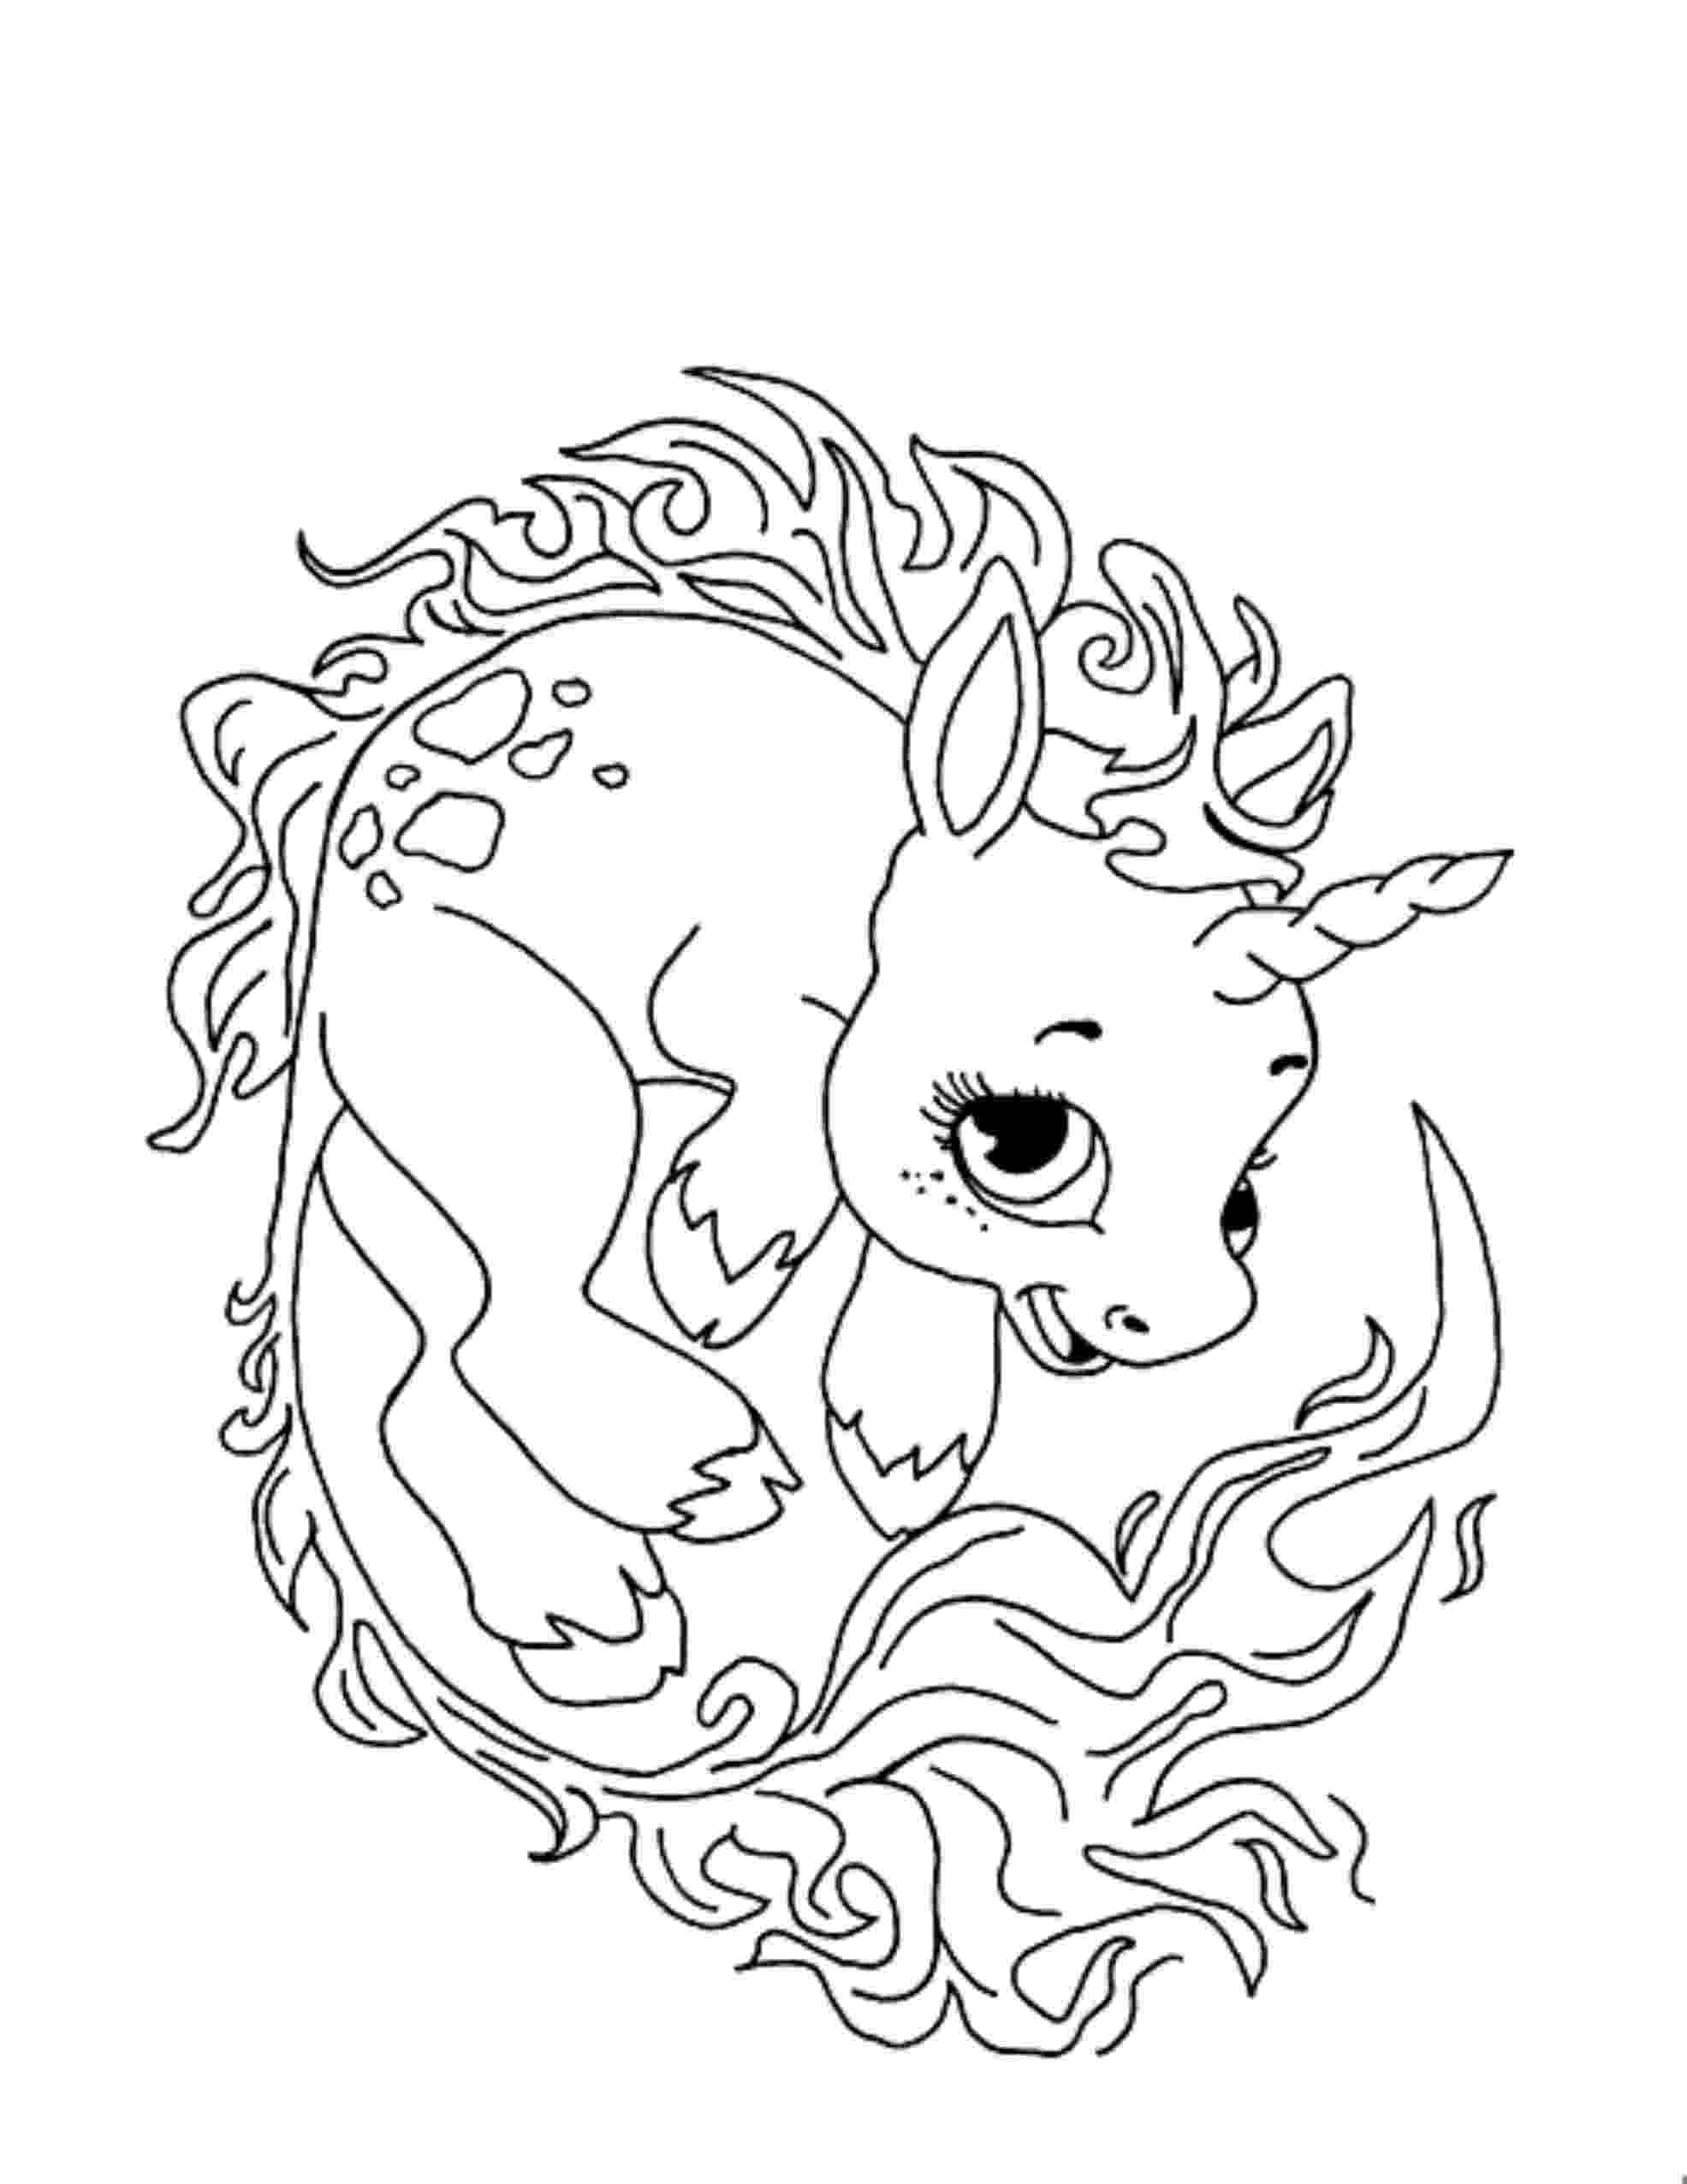 unicorns coloring pages unicorn coloring pages to download and print for free pages coloring unicorns